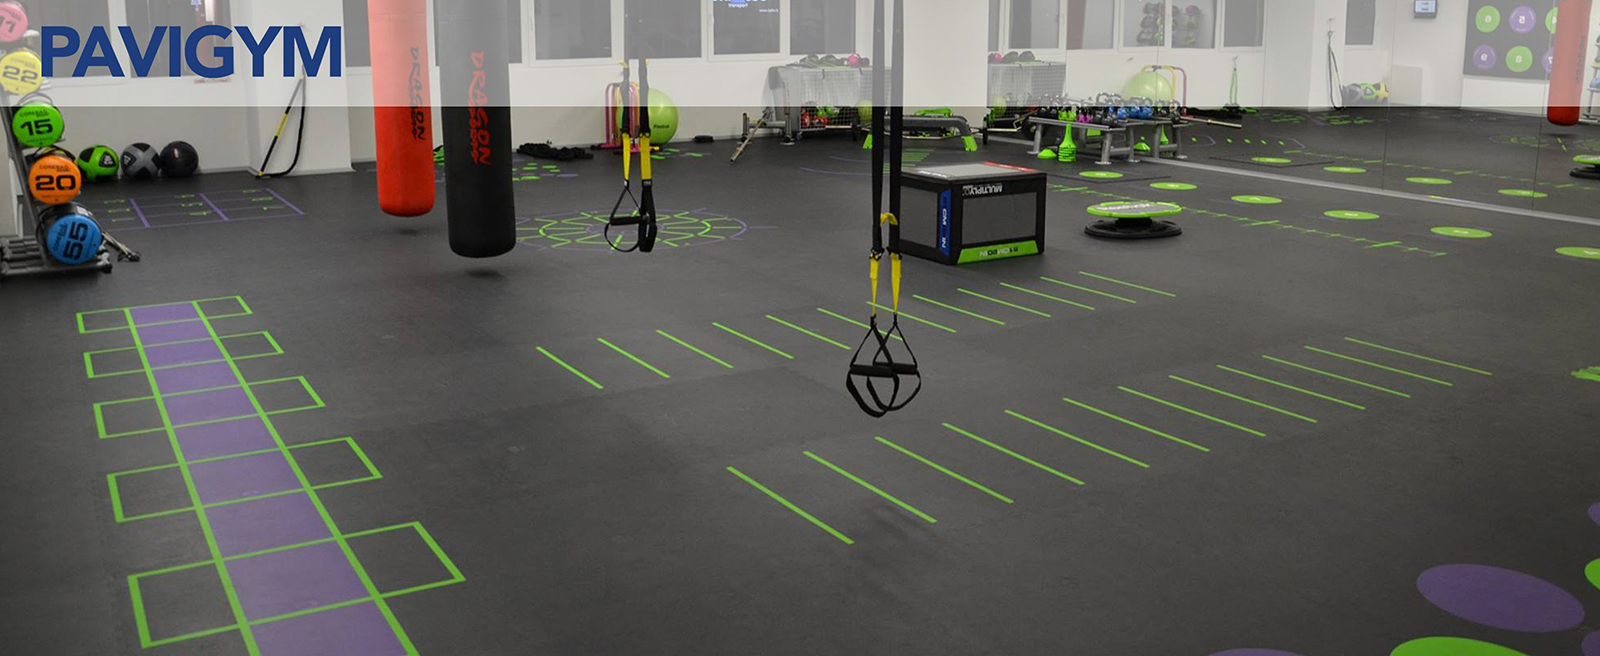 Pavigym: Premier Fitness Flooring Solution